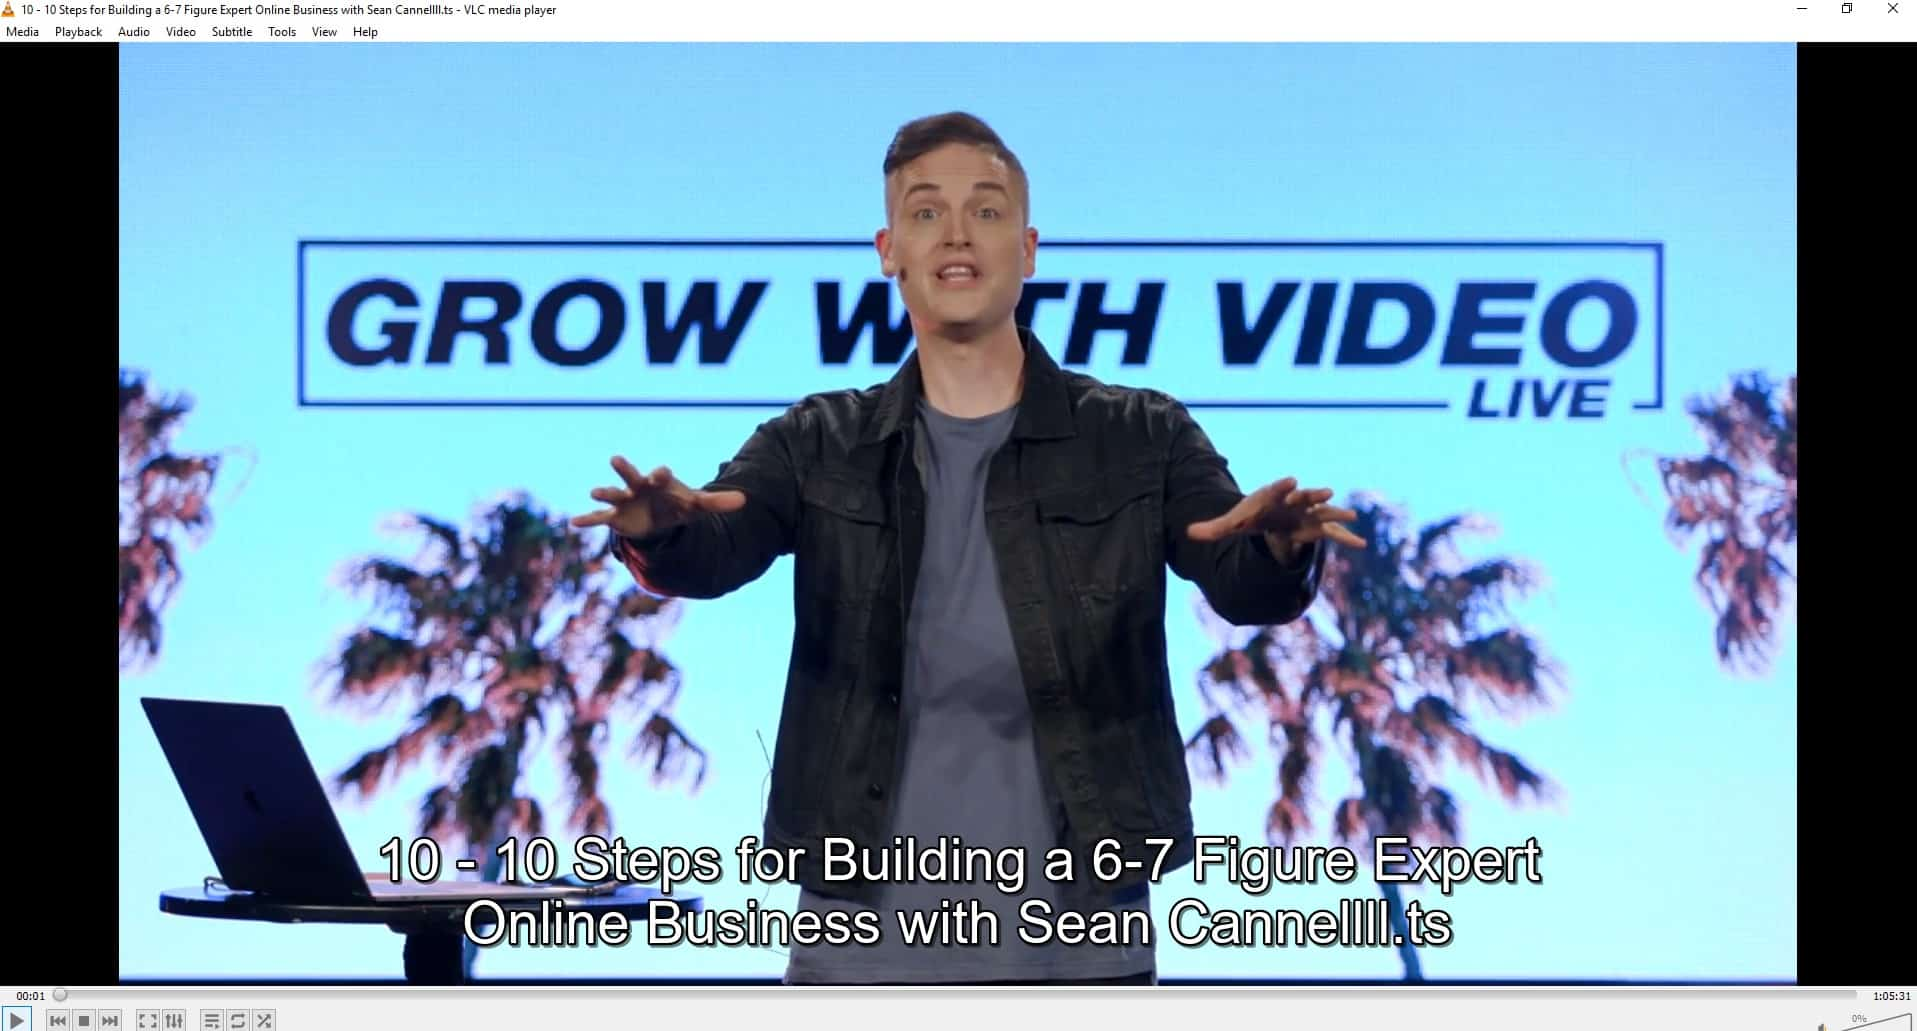 Grow With Video Live 2020 Sale